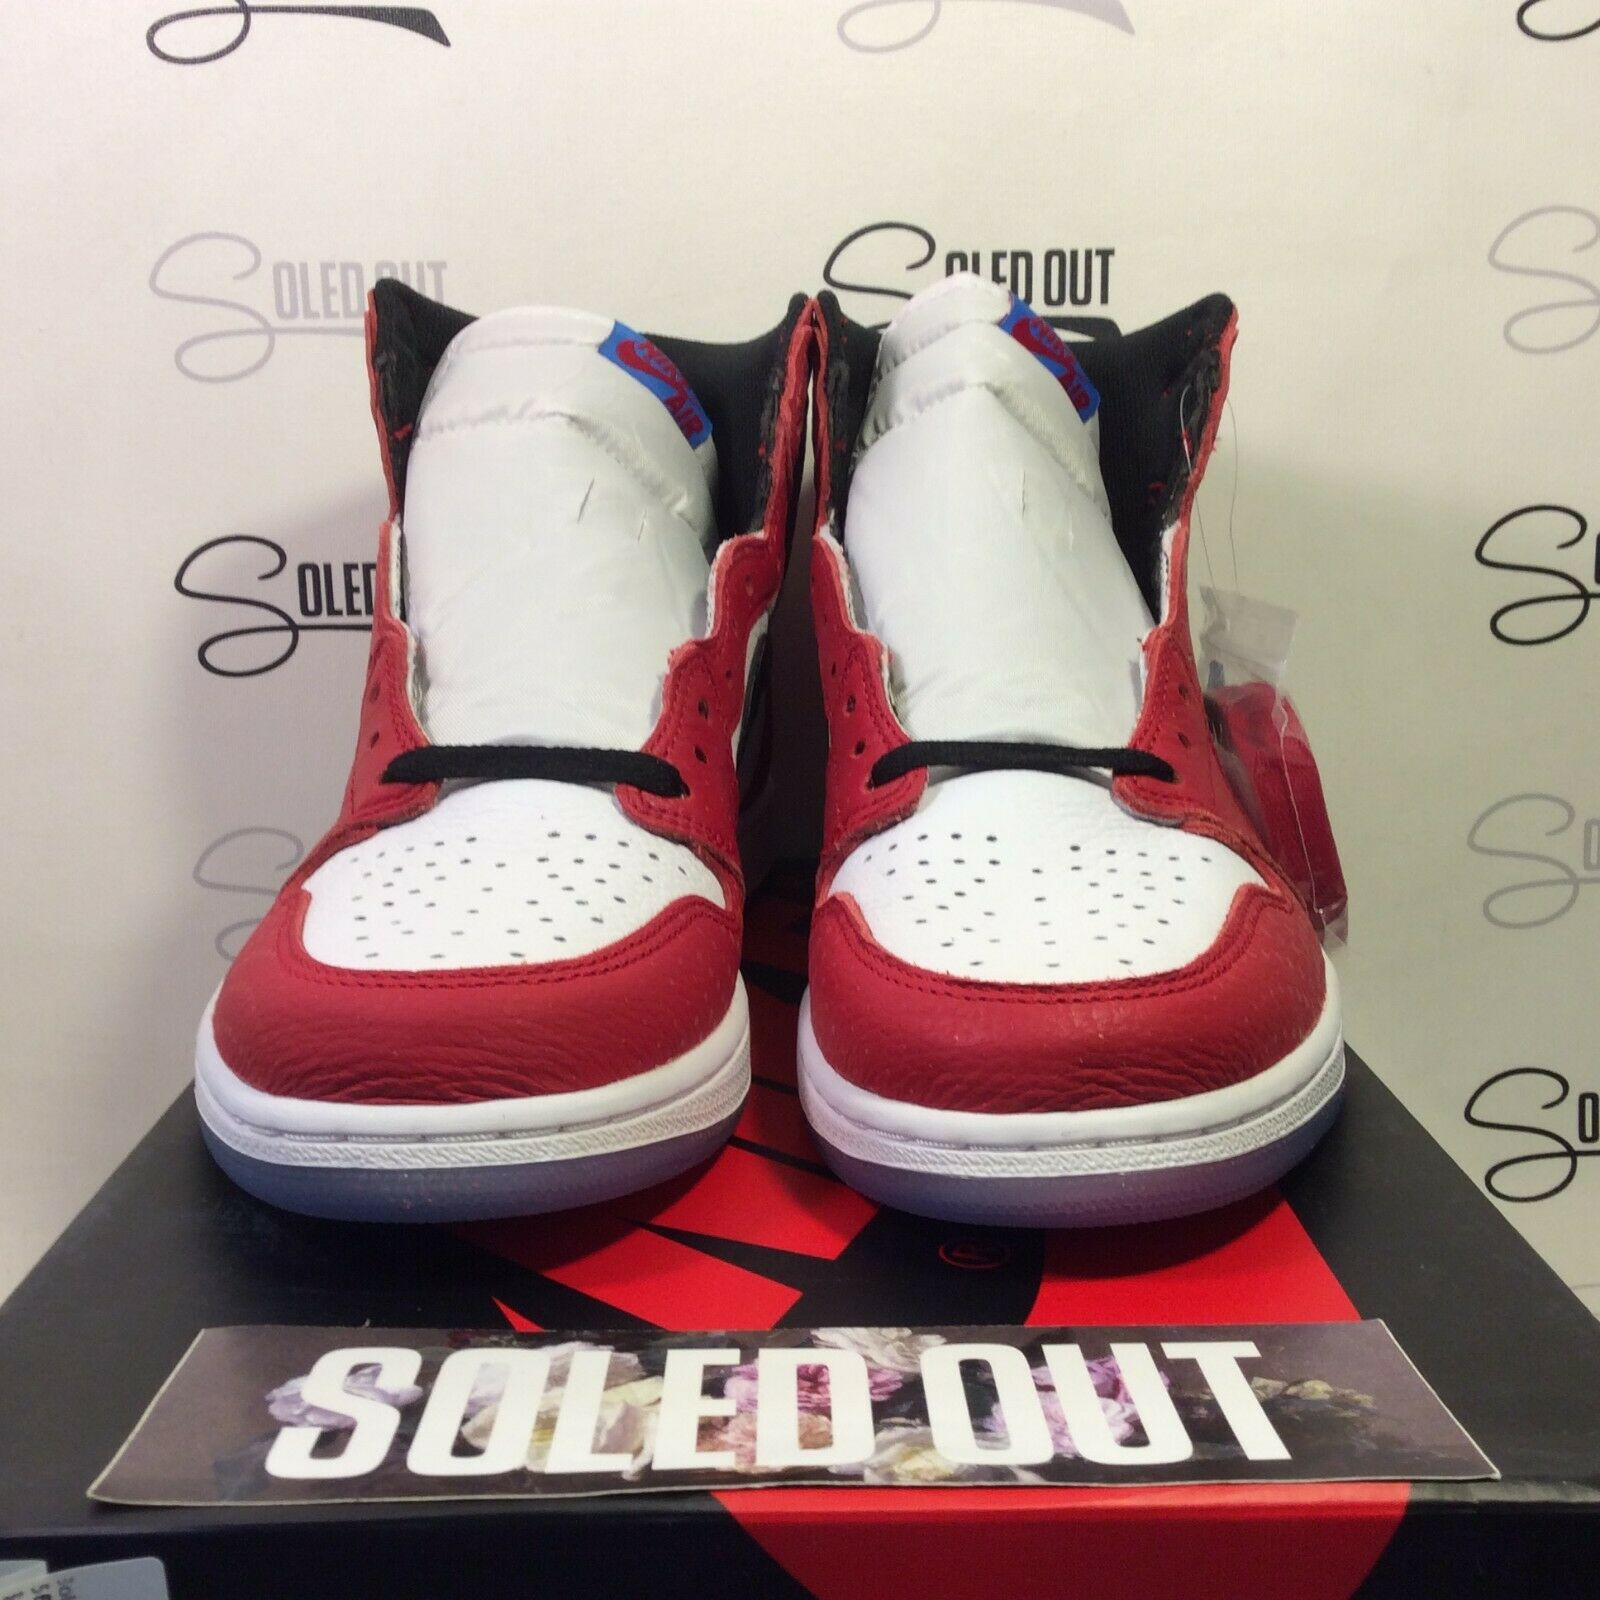 AIR JORDAN 1 RETRO HIGH OG  ORIGIN STORY  2018 - ITEM NUMBER 5566-3